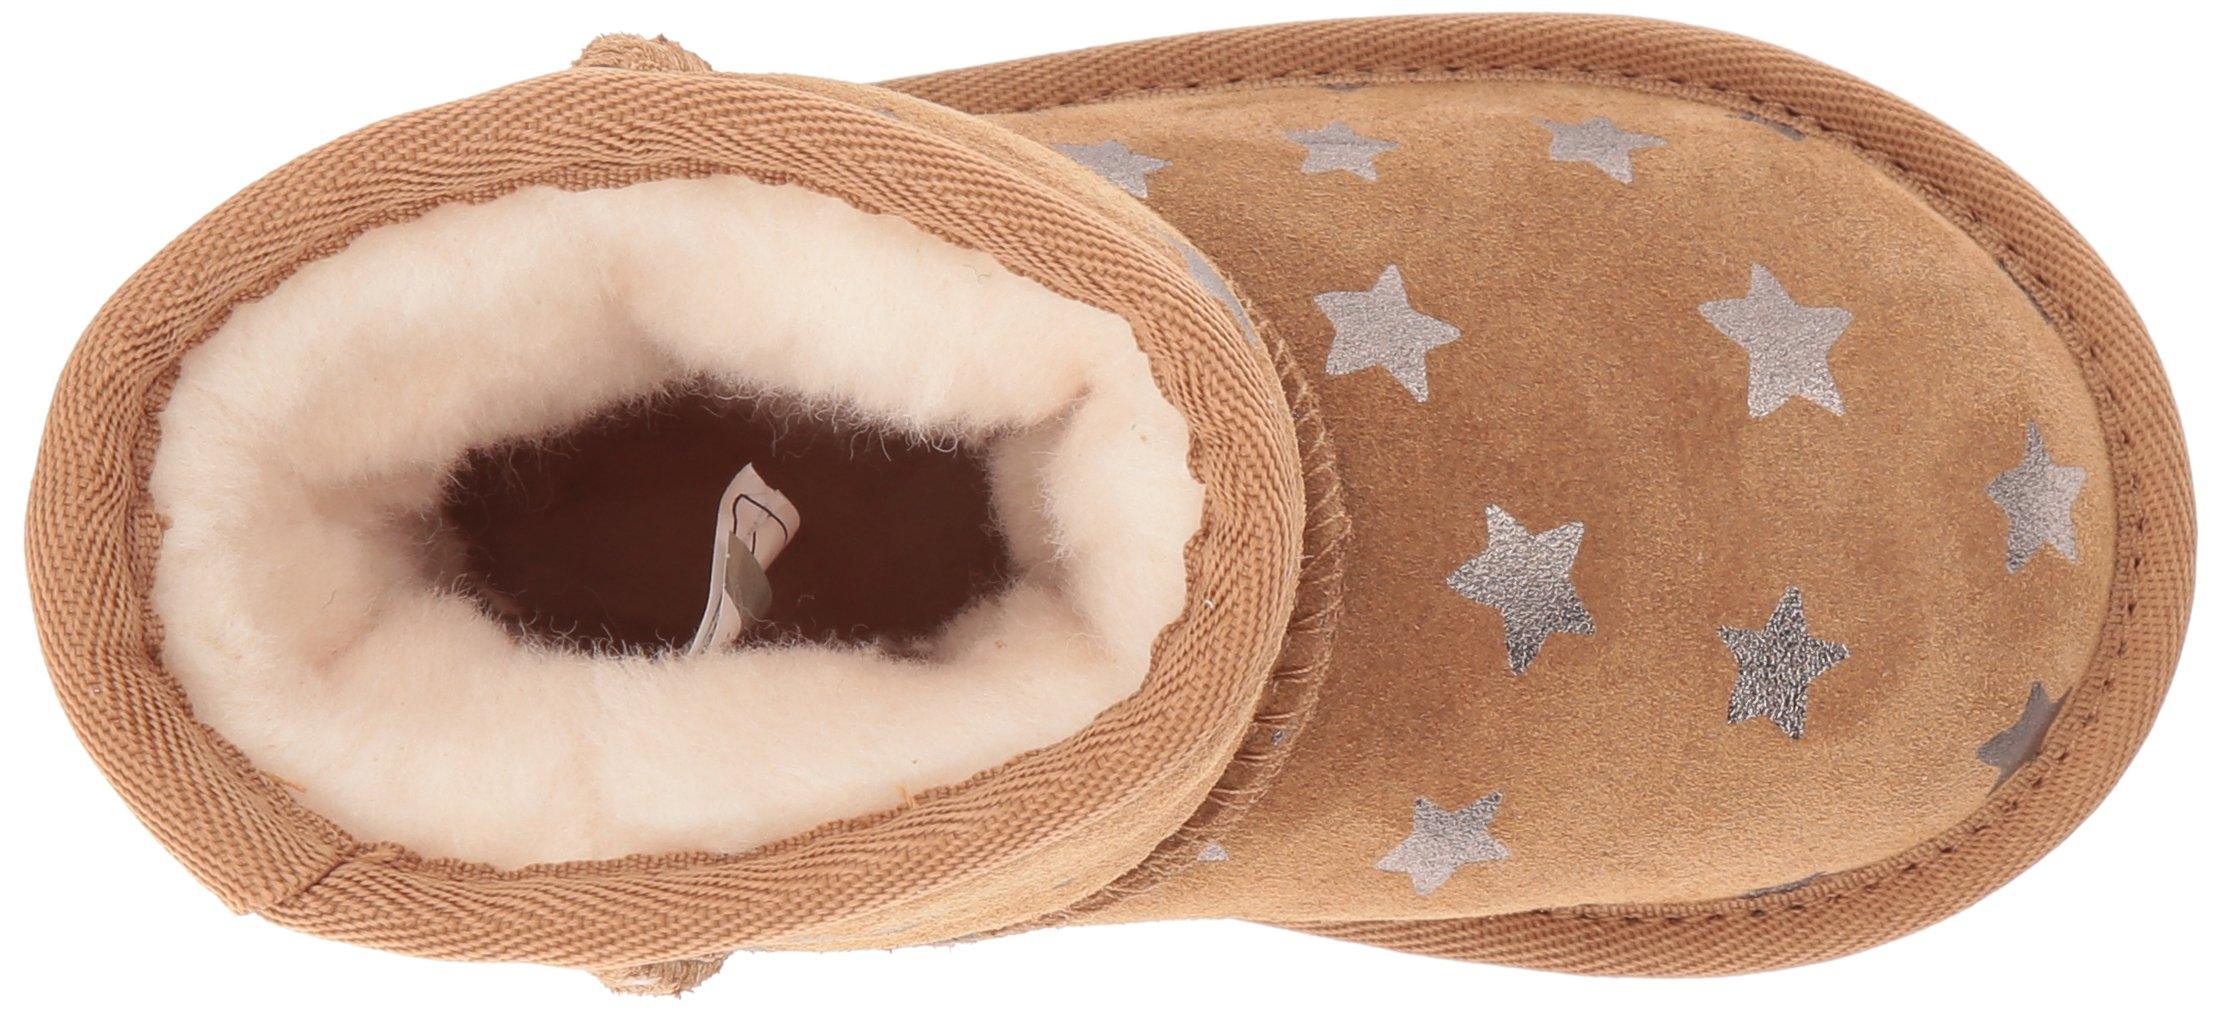 UGG Girls T Classic Short II Stars Pull-On Boot, Chestnut, 7 M US Toddler by UGG (Image #8)